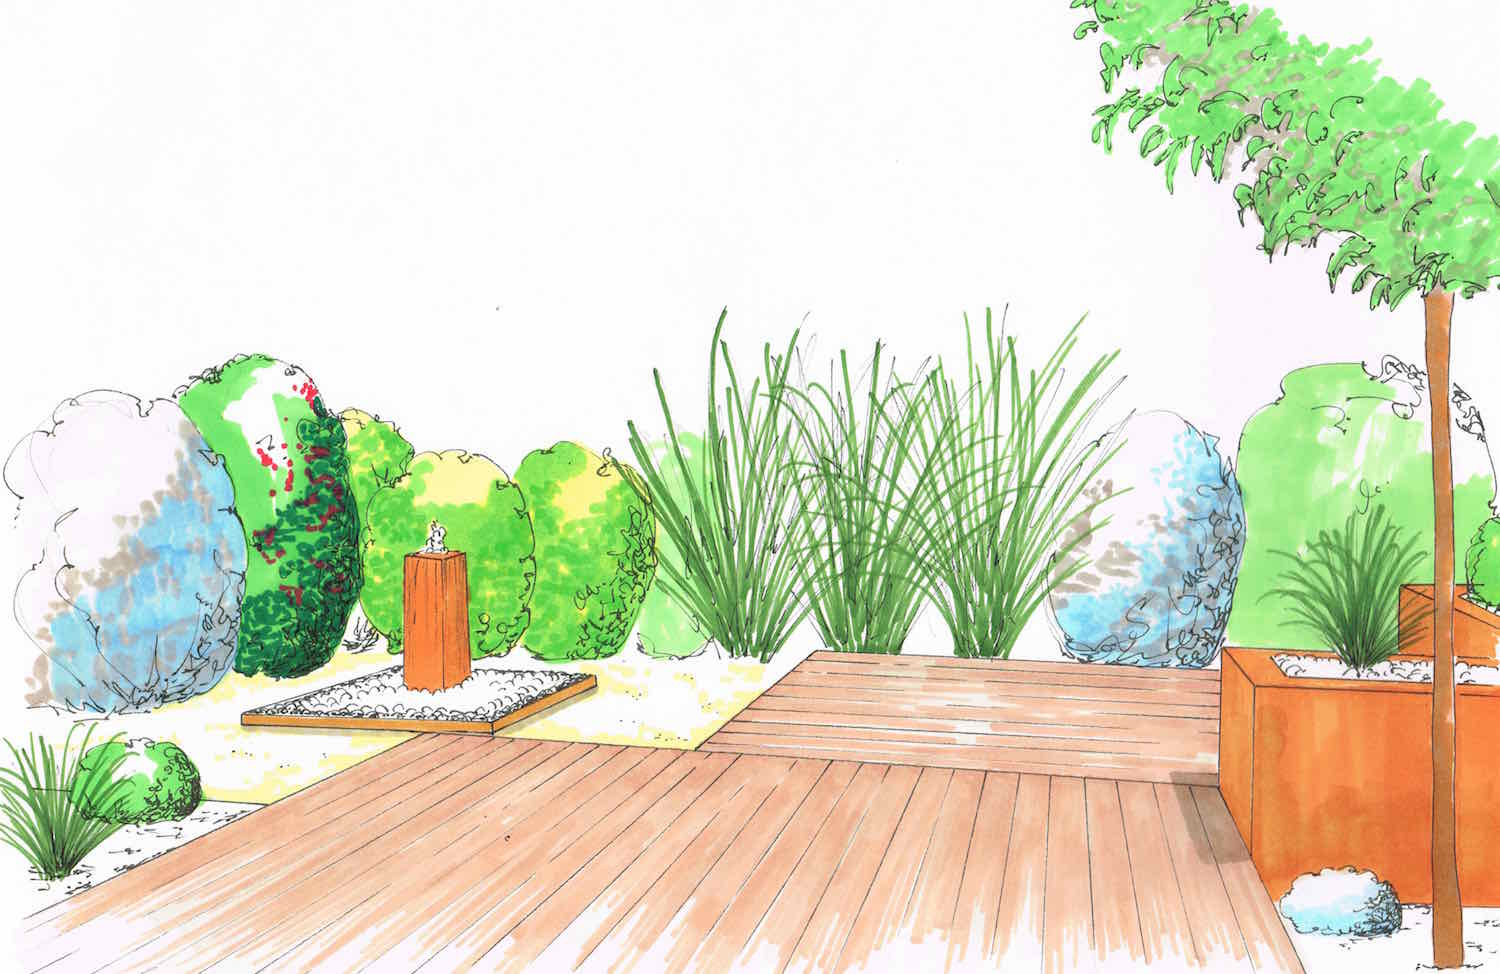 Jardin m diterran en archives page 3 sur 3 atelier for Creation paysage